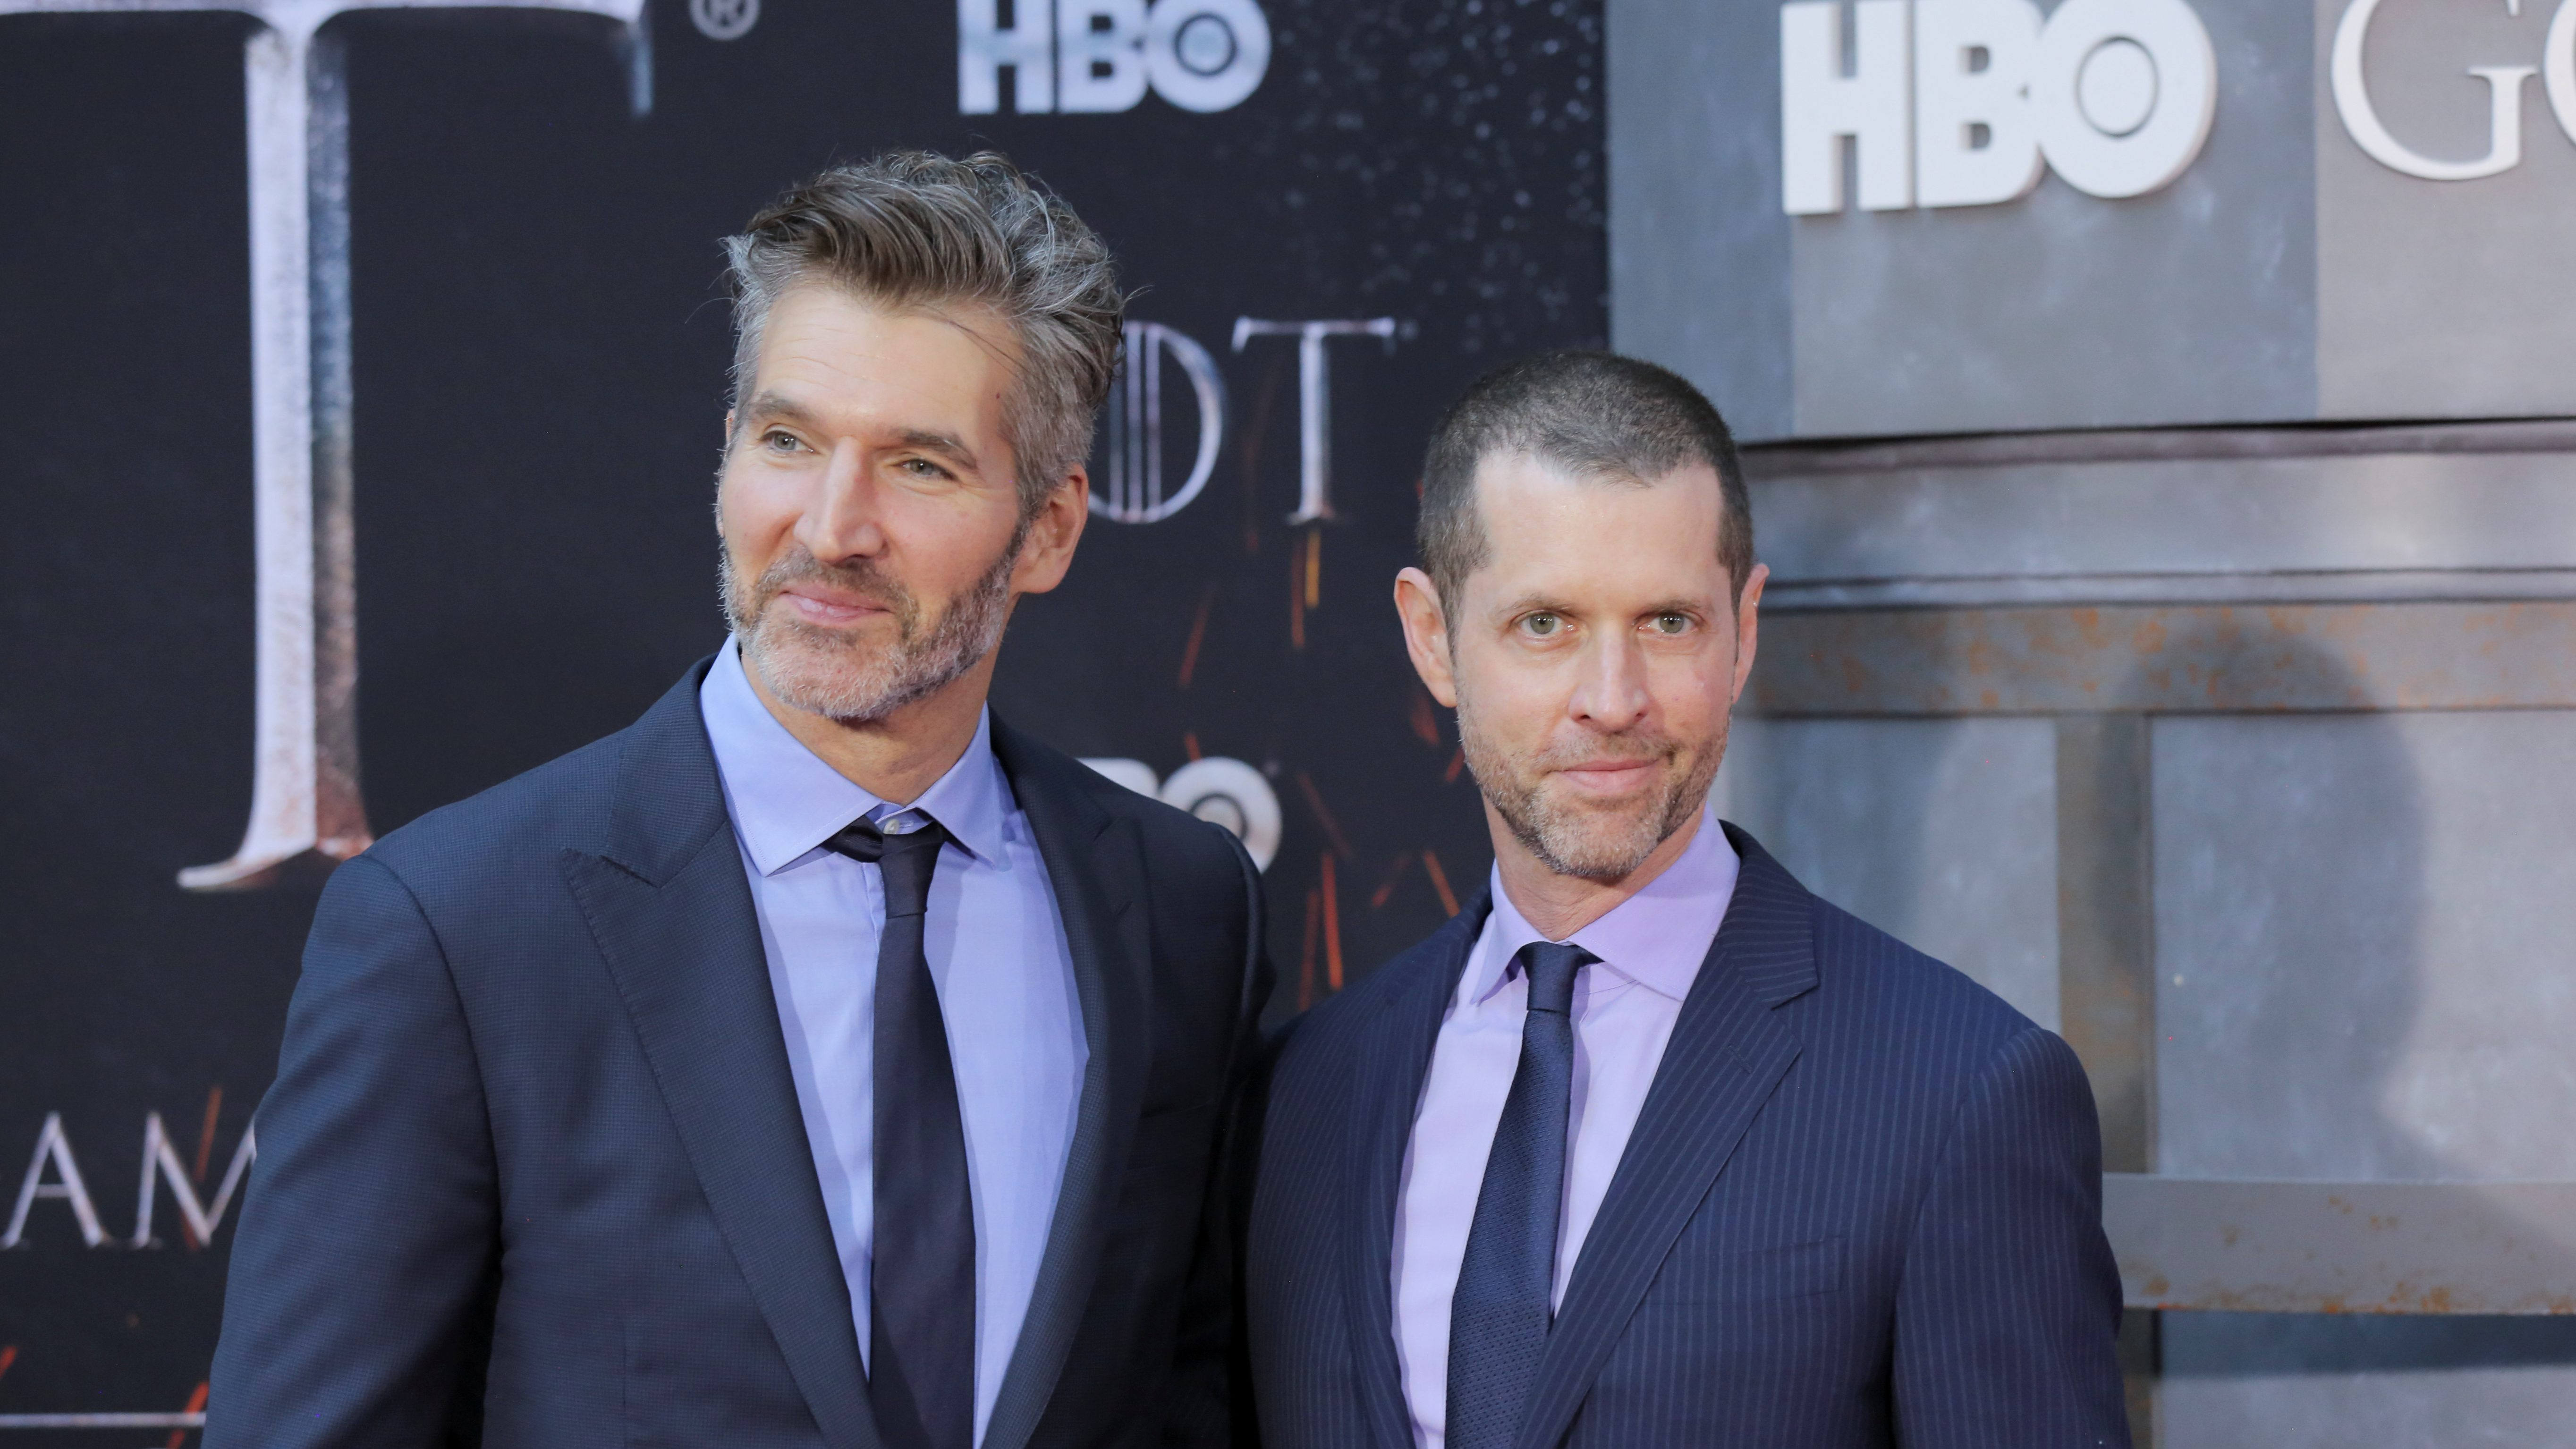 """Game of Thrones creators David Benioff and D.B. Weiss arrive for the premiere of the final season of """"Game of Thrones"""" at Radio City Music Hall in New York"""